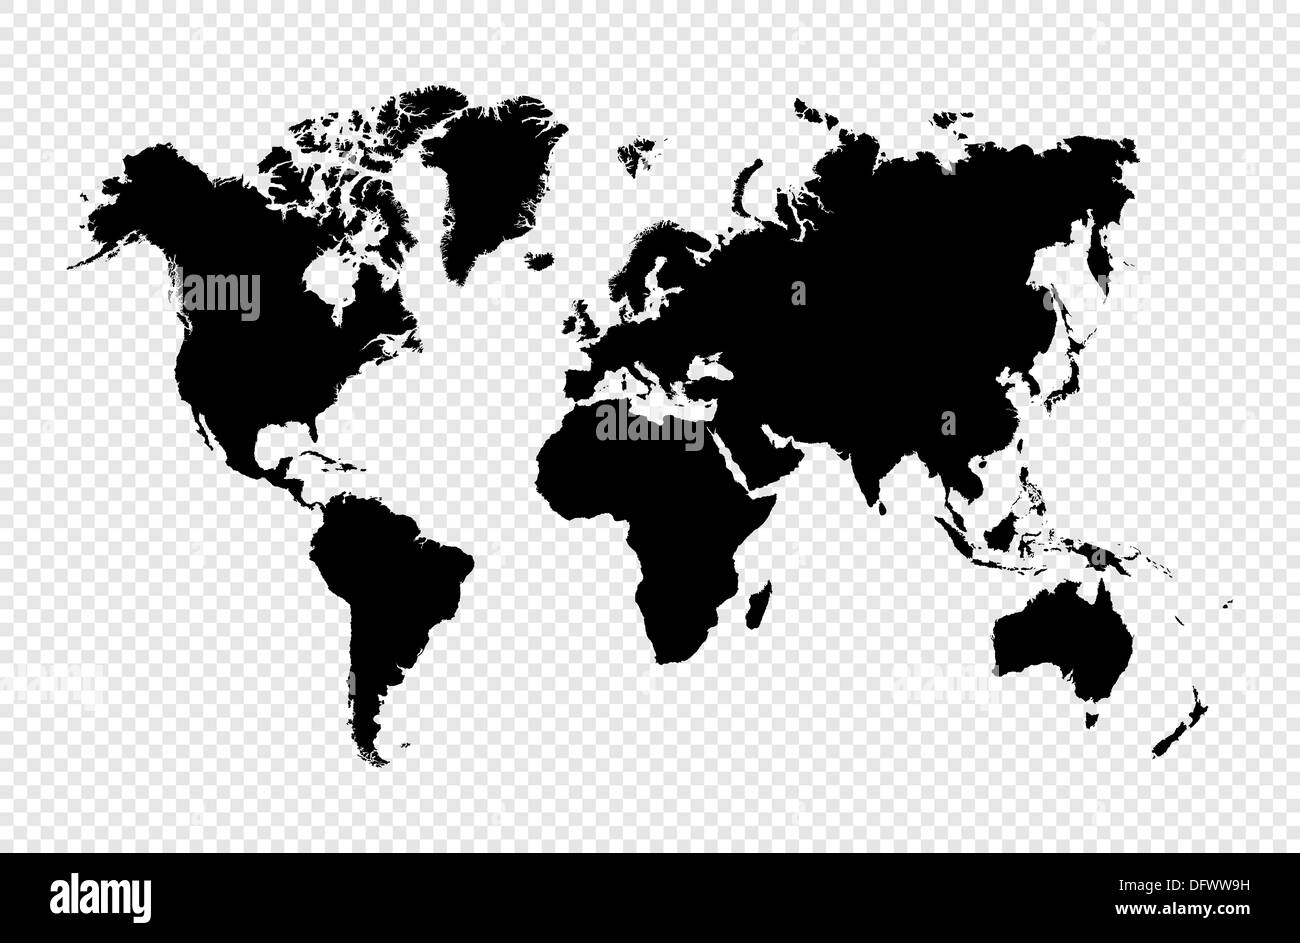 Black silhouette isolated World map. EPS10 vector file organized in layers for easy editing. - Stock Image